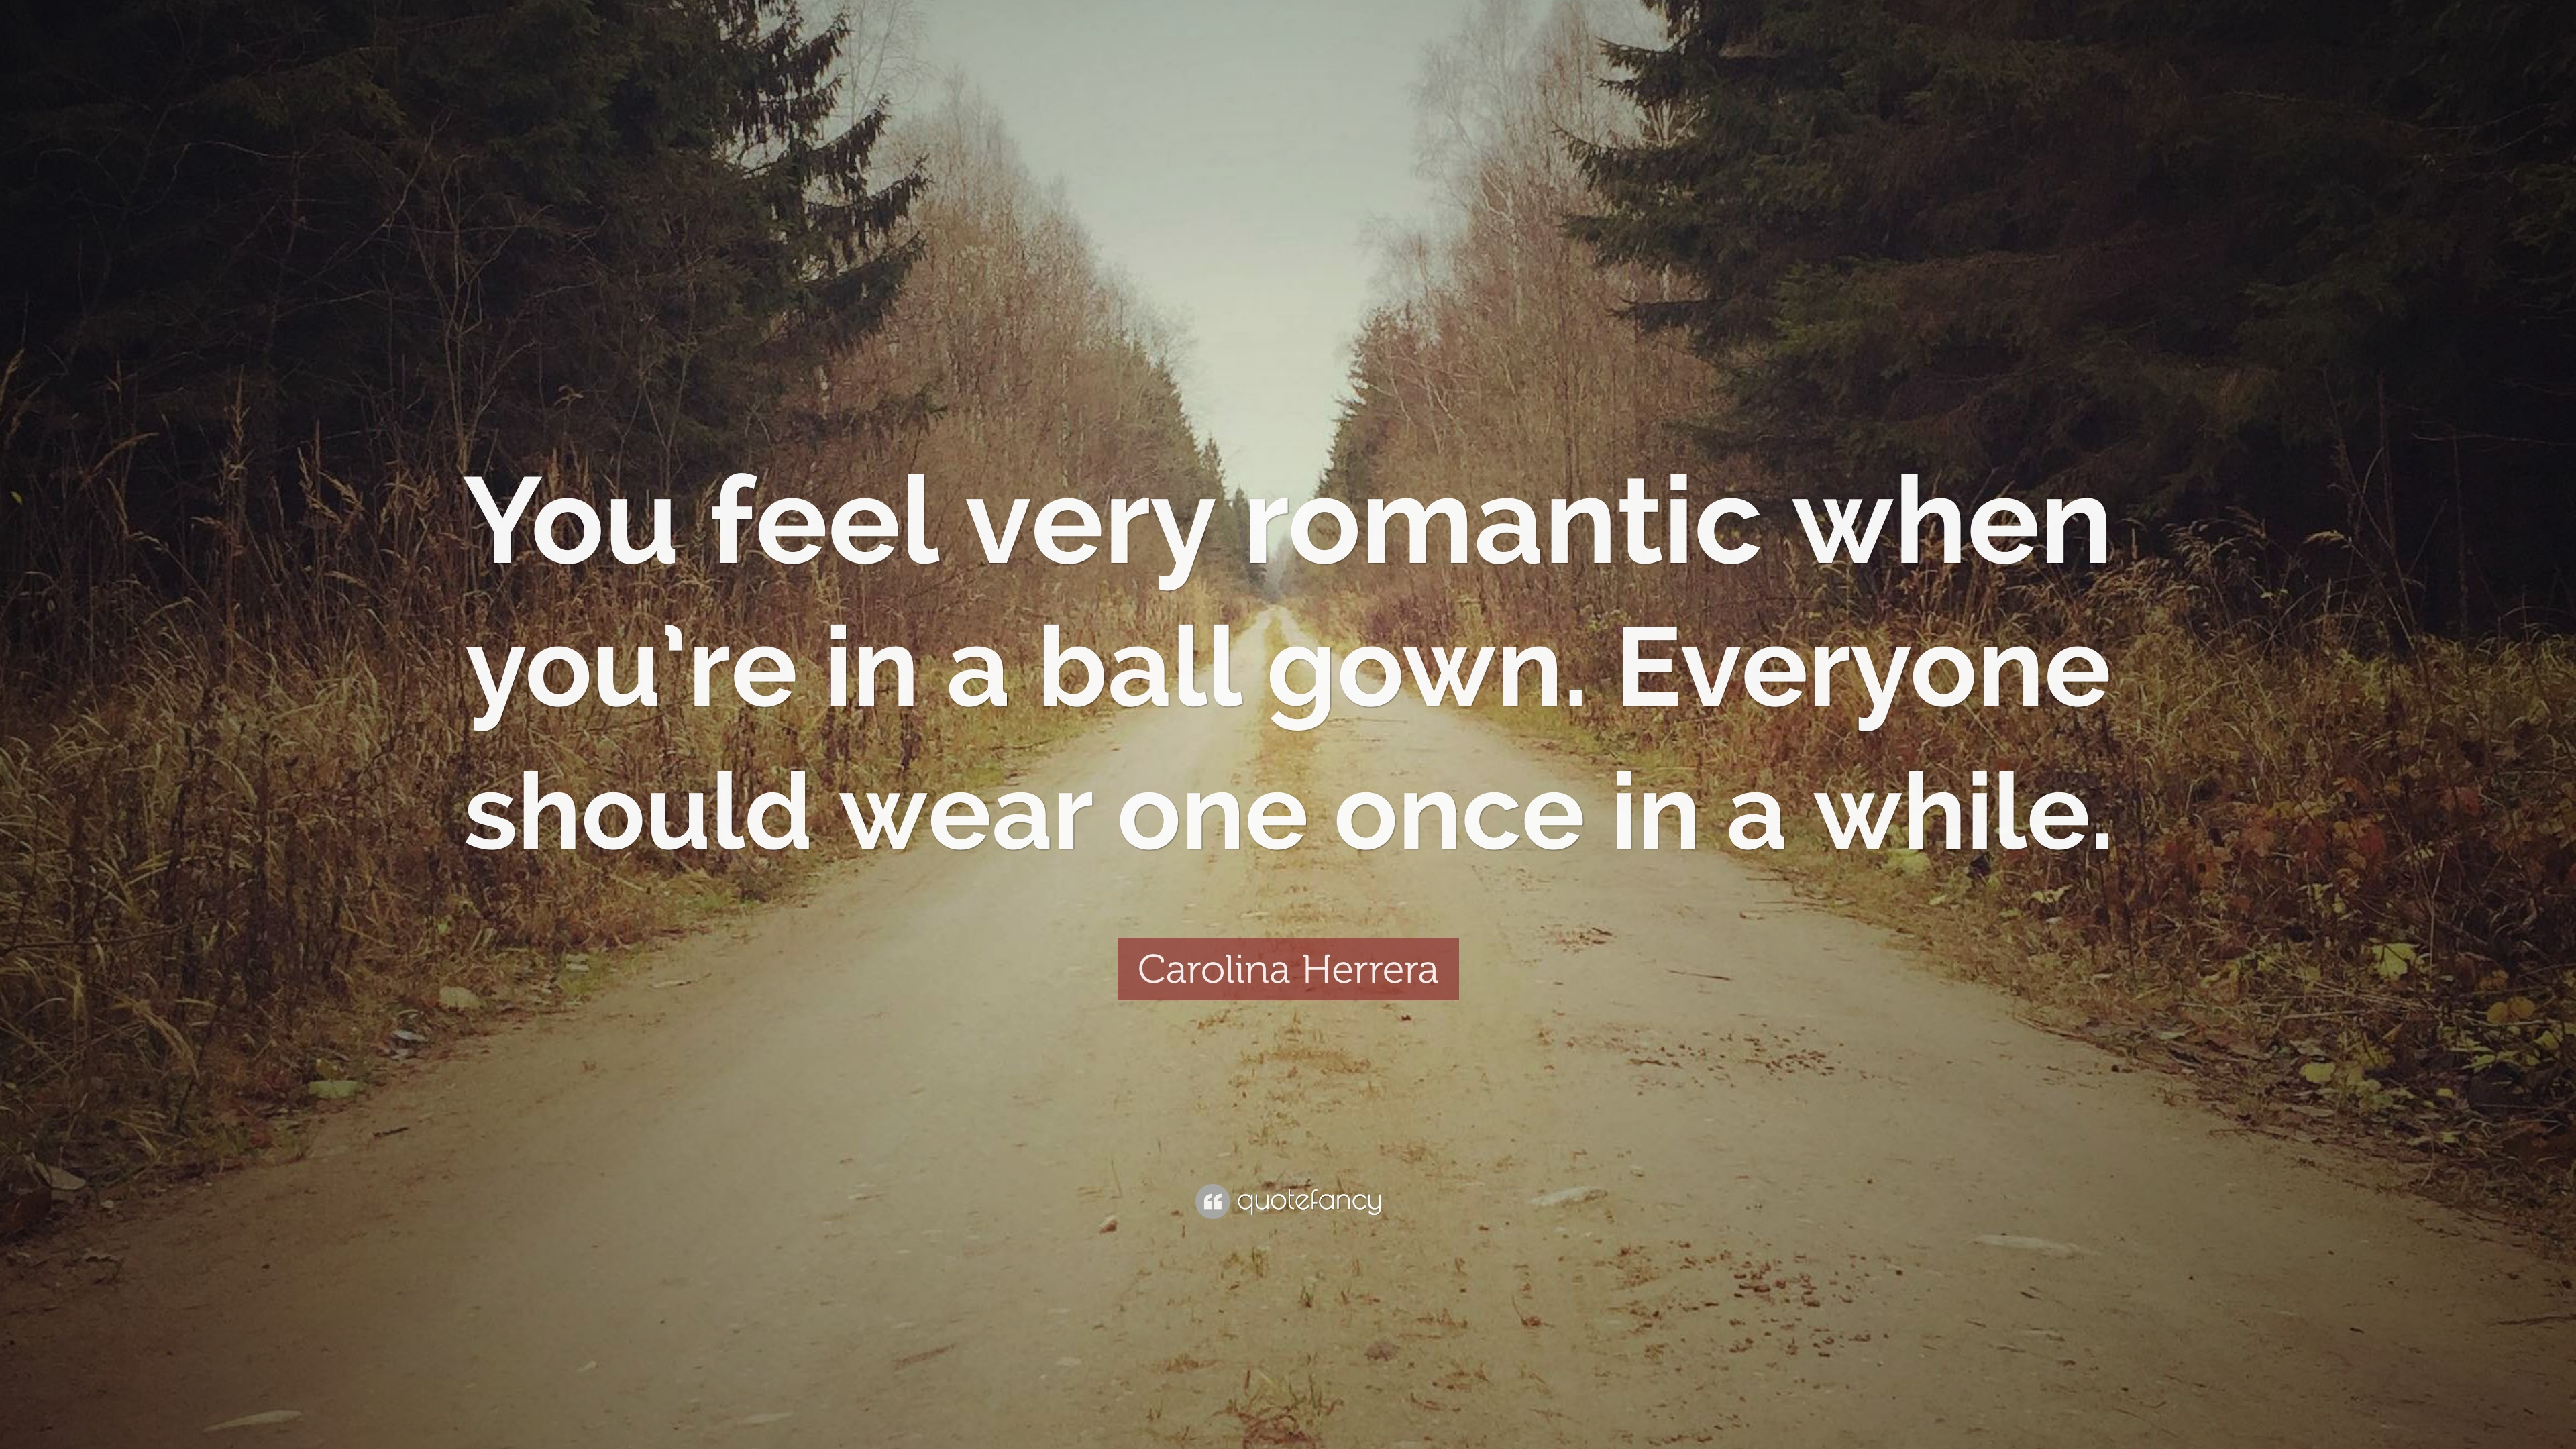 you are very romantic